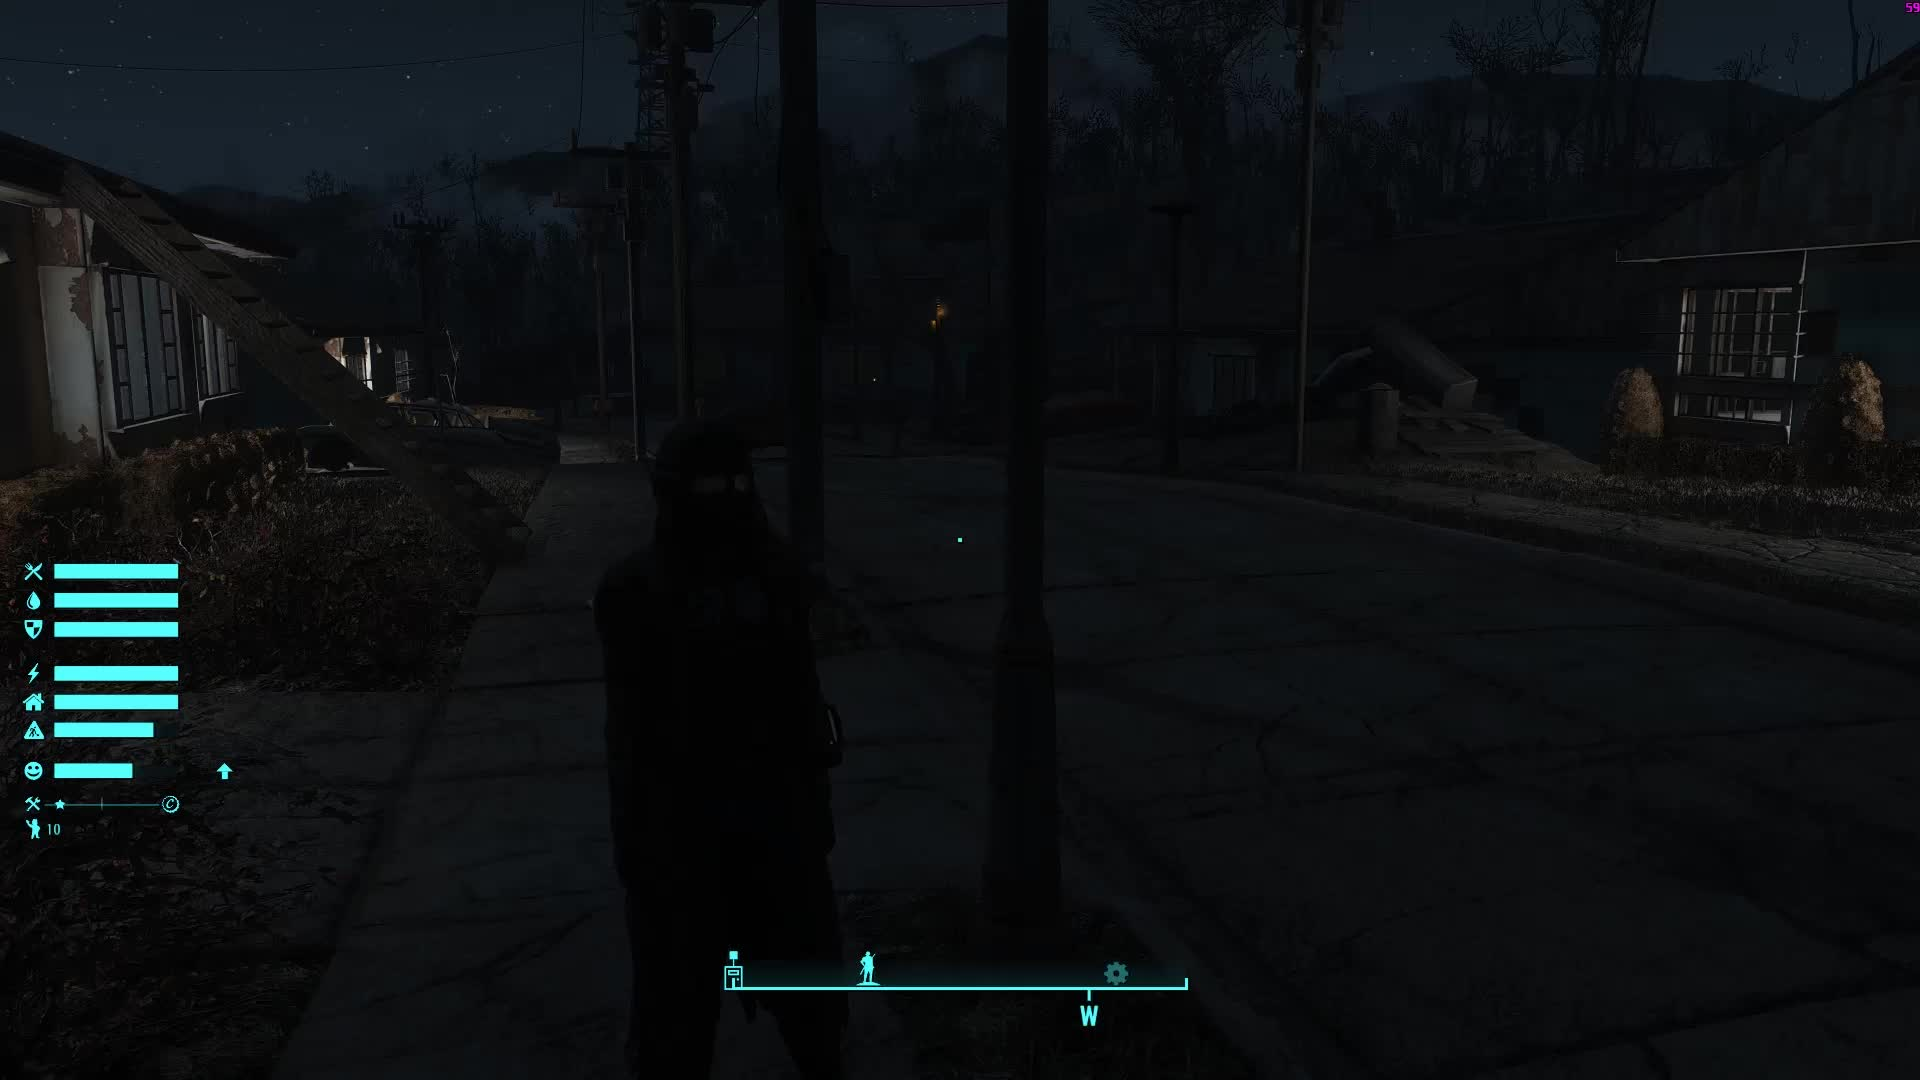 fallout4, Fallout 4 NCR Veteran Ranger visor toggle [now with thermal] GIFs